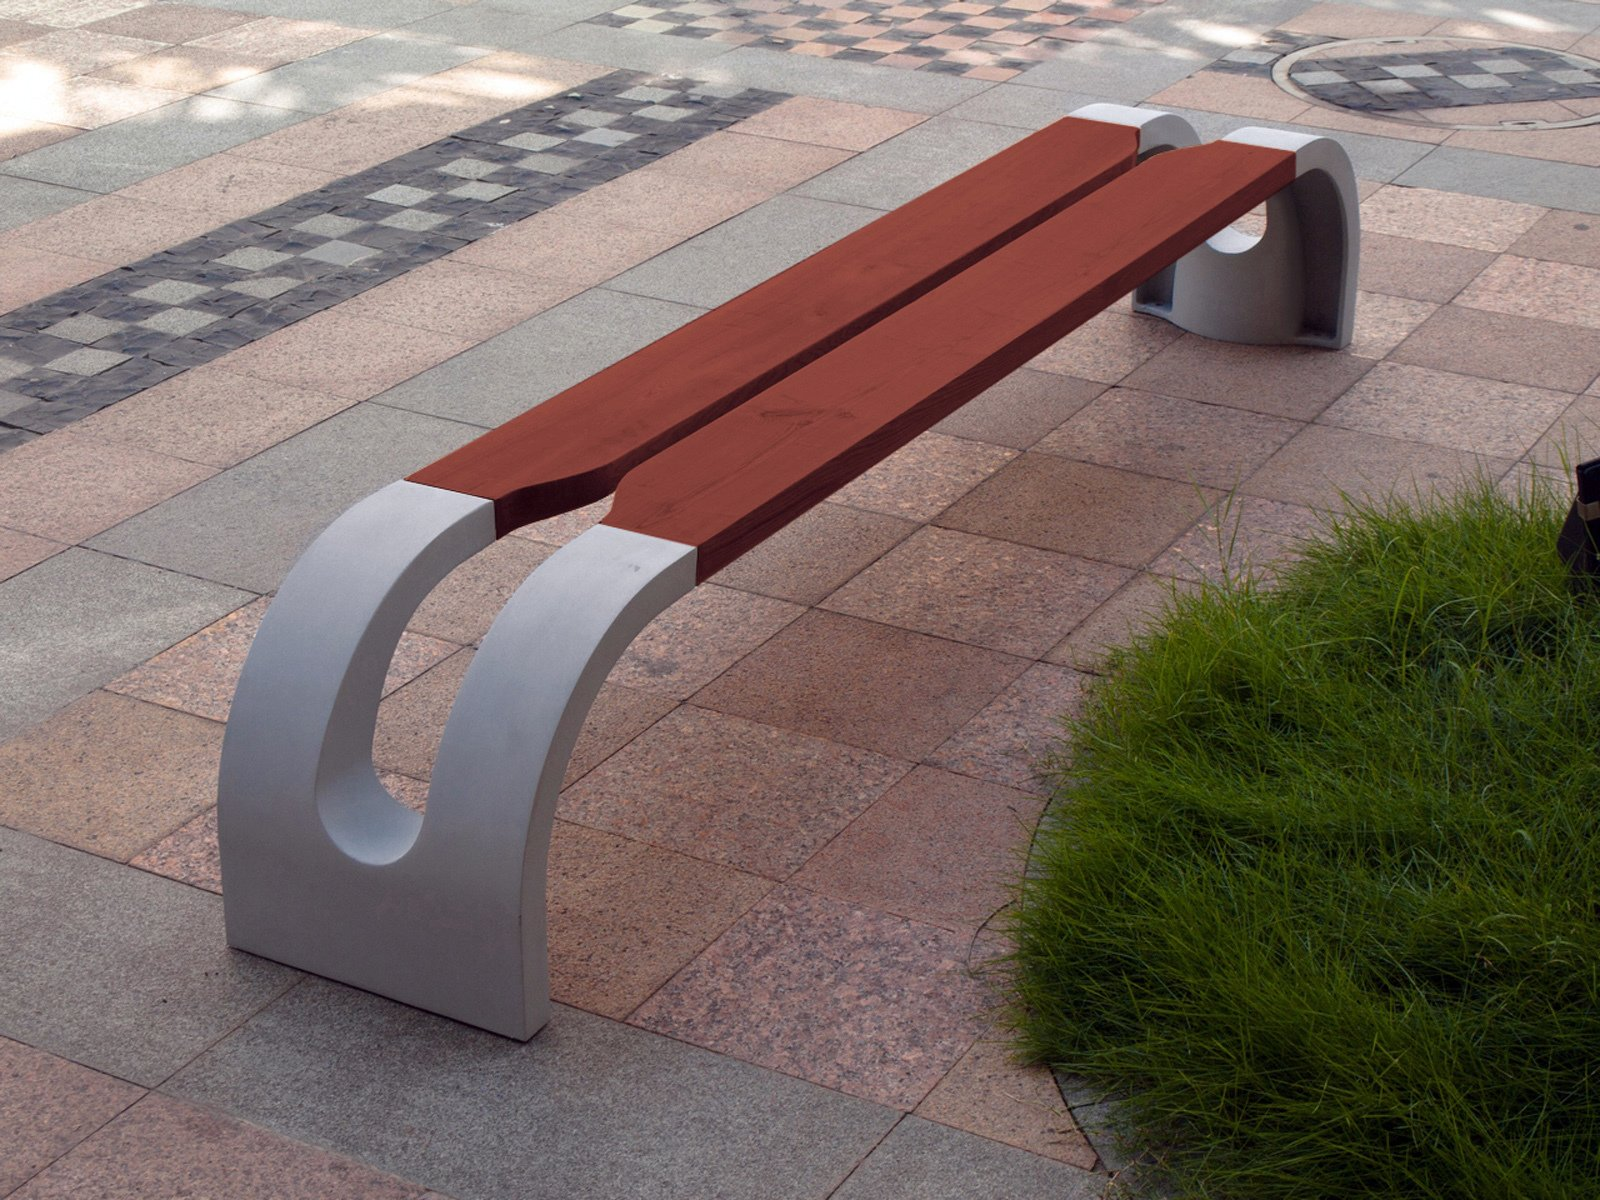 Melbourne Bench by Igor Solovyov  Simple, with a clear silhouette, the cast aluminum and pine wood bench by Belarusian designer Igor Solovyov pops up in urban boasts a modern, yet classical, feel.  Street Furniture Your City Wishes it Had by Tim Newcomb